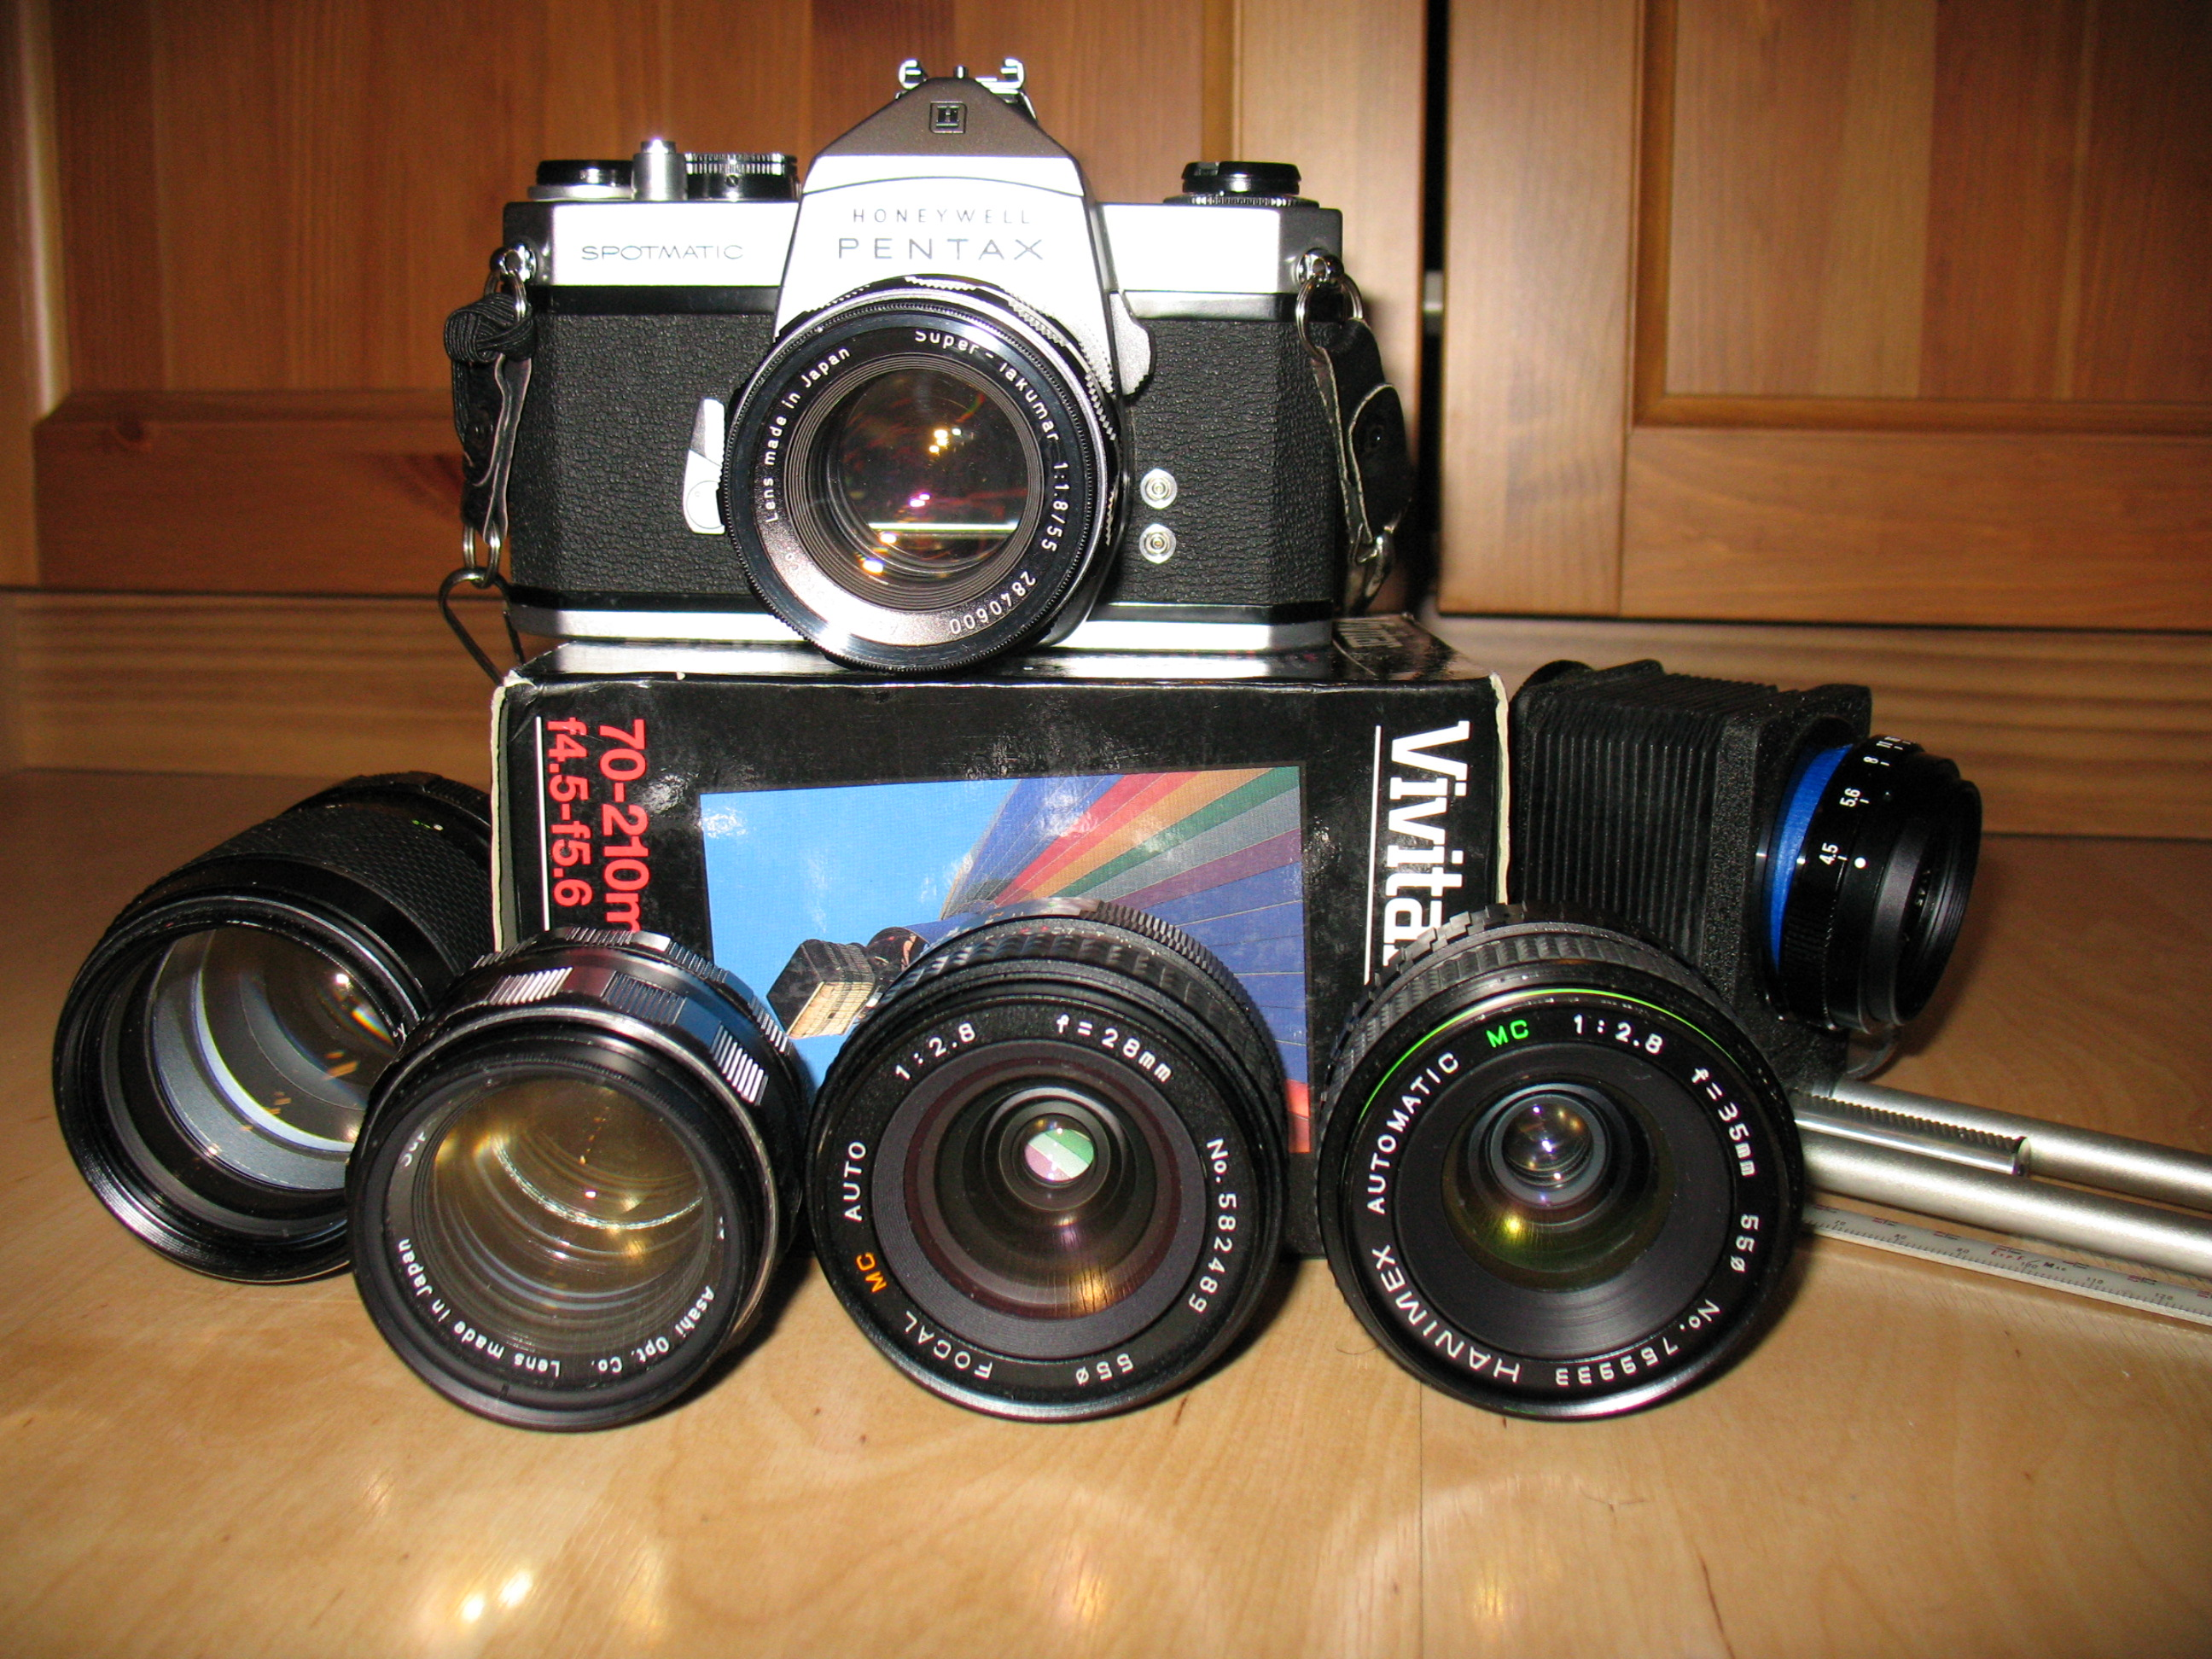 Pentax Spotmatic and lenses